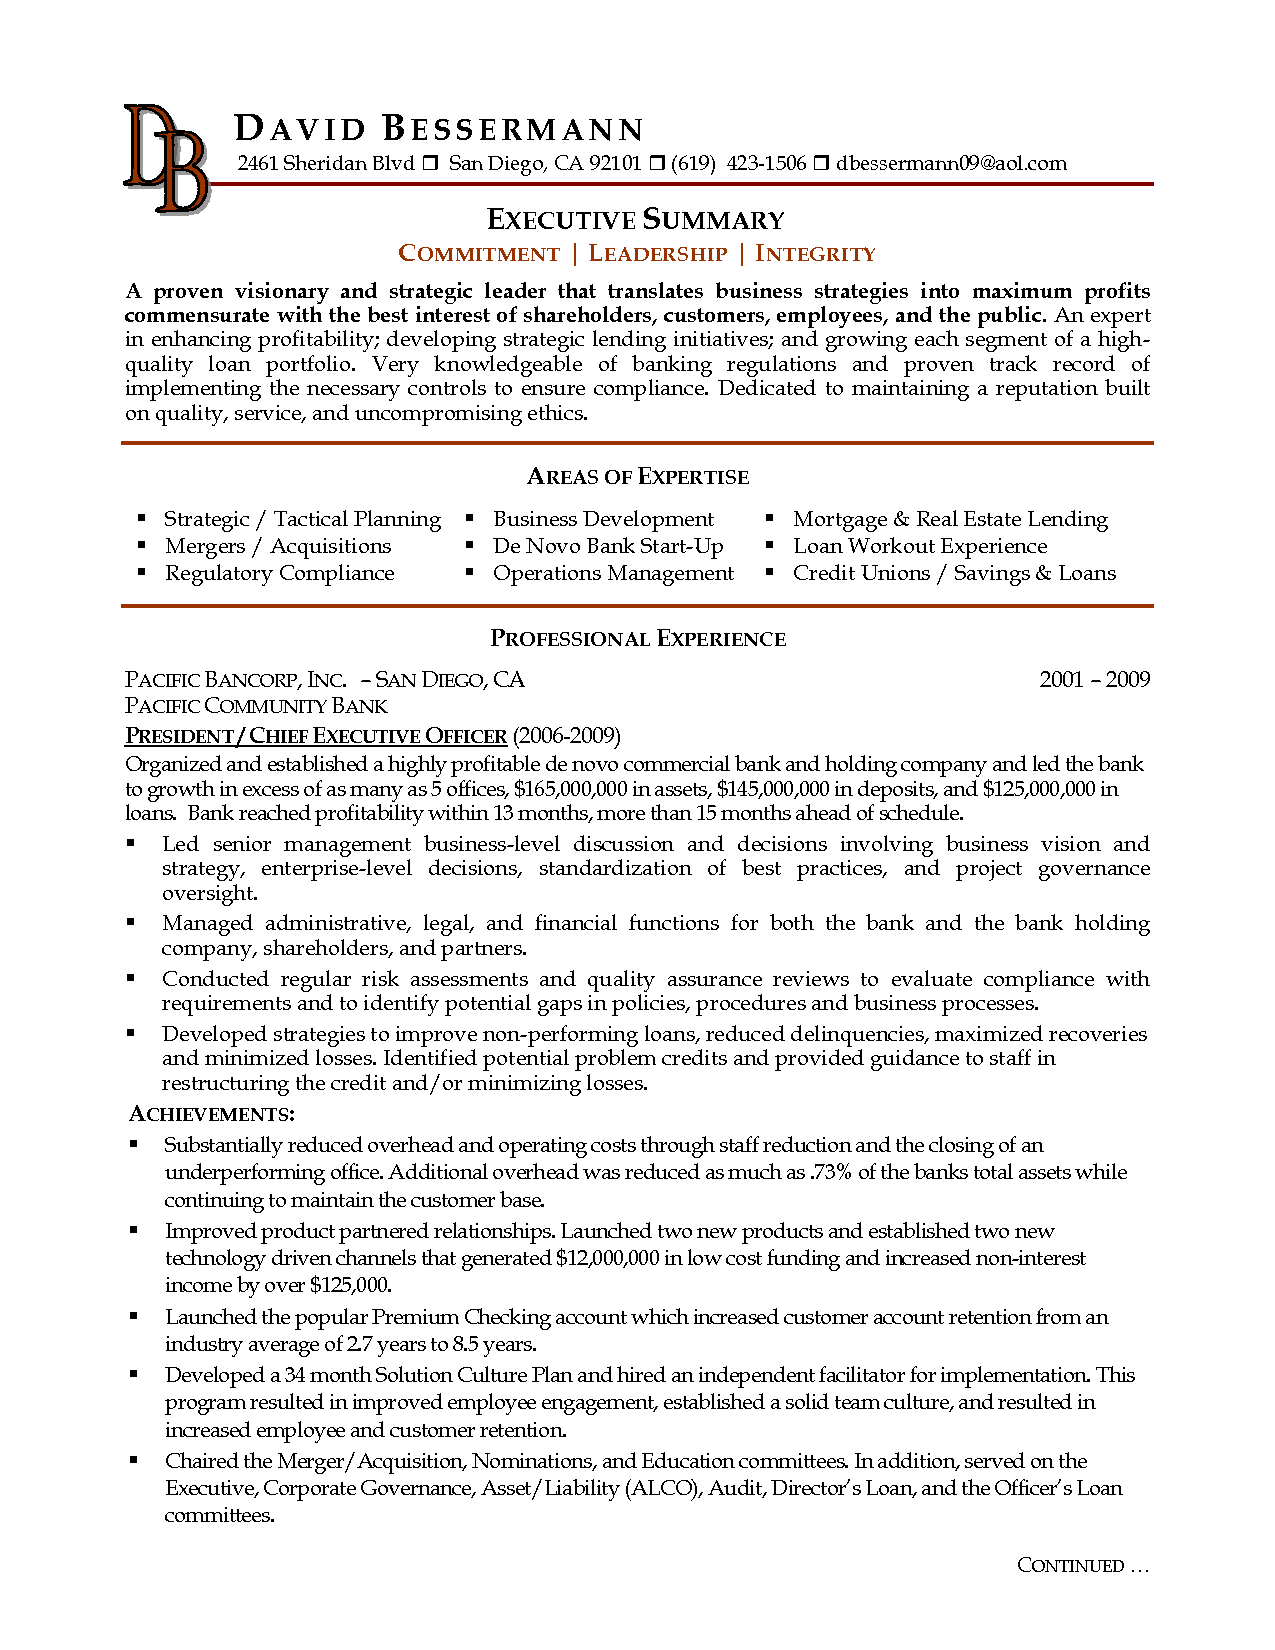 Resume Summary Examples Template Example For Students Professional Lwngpdcs  Executive Resume Formats And Examples